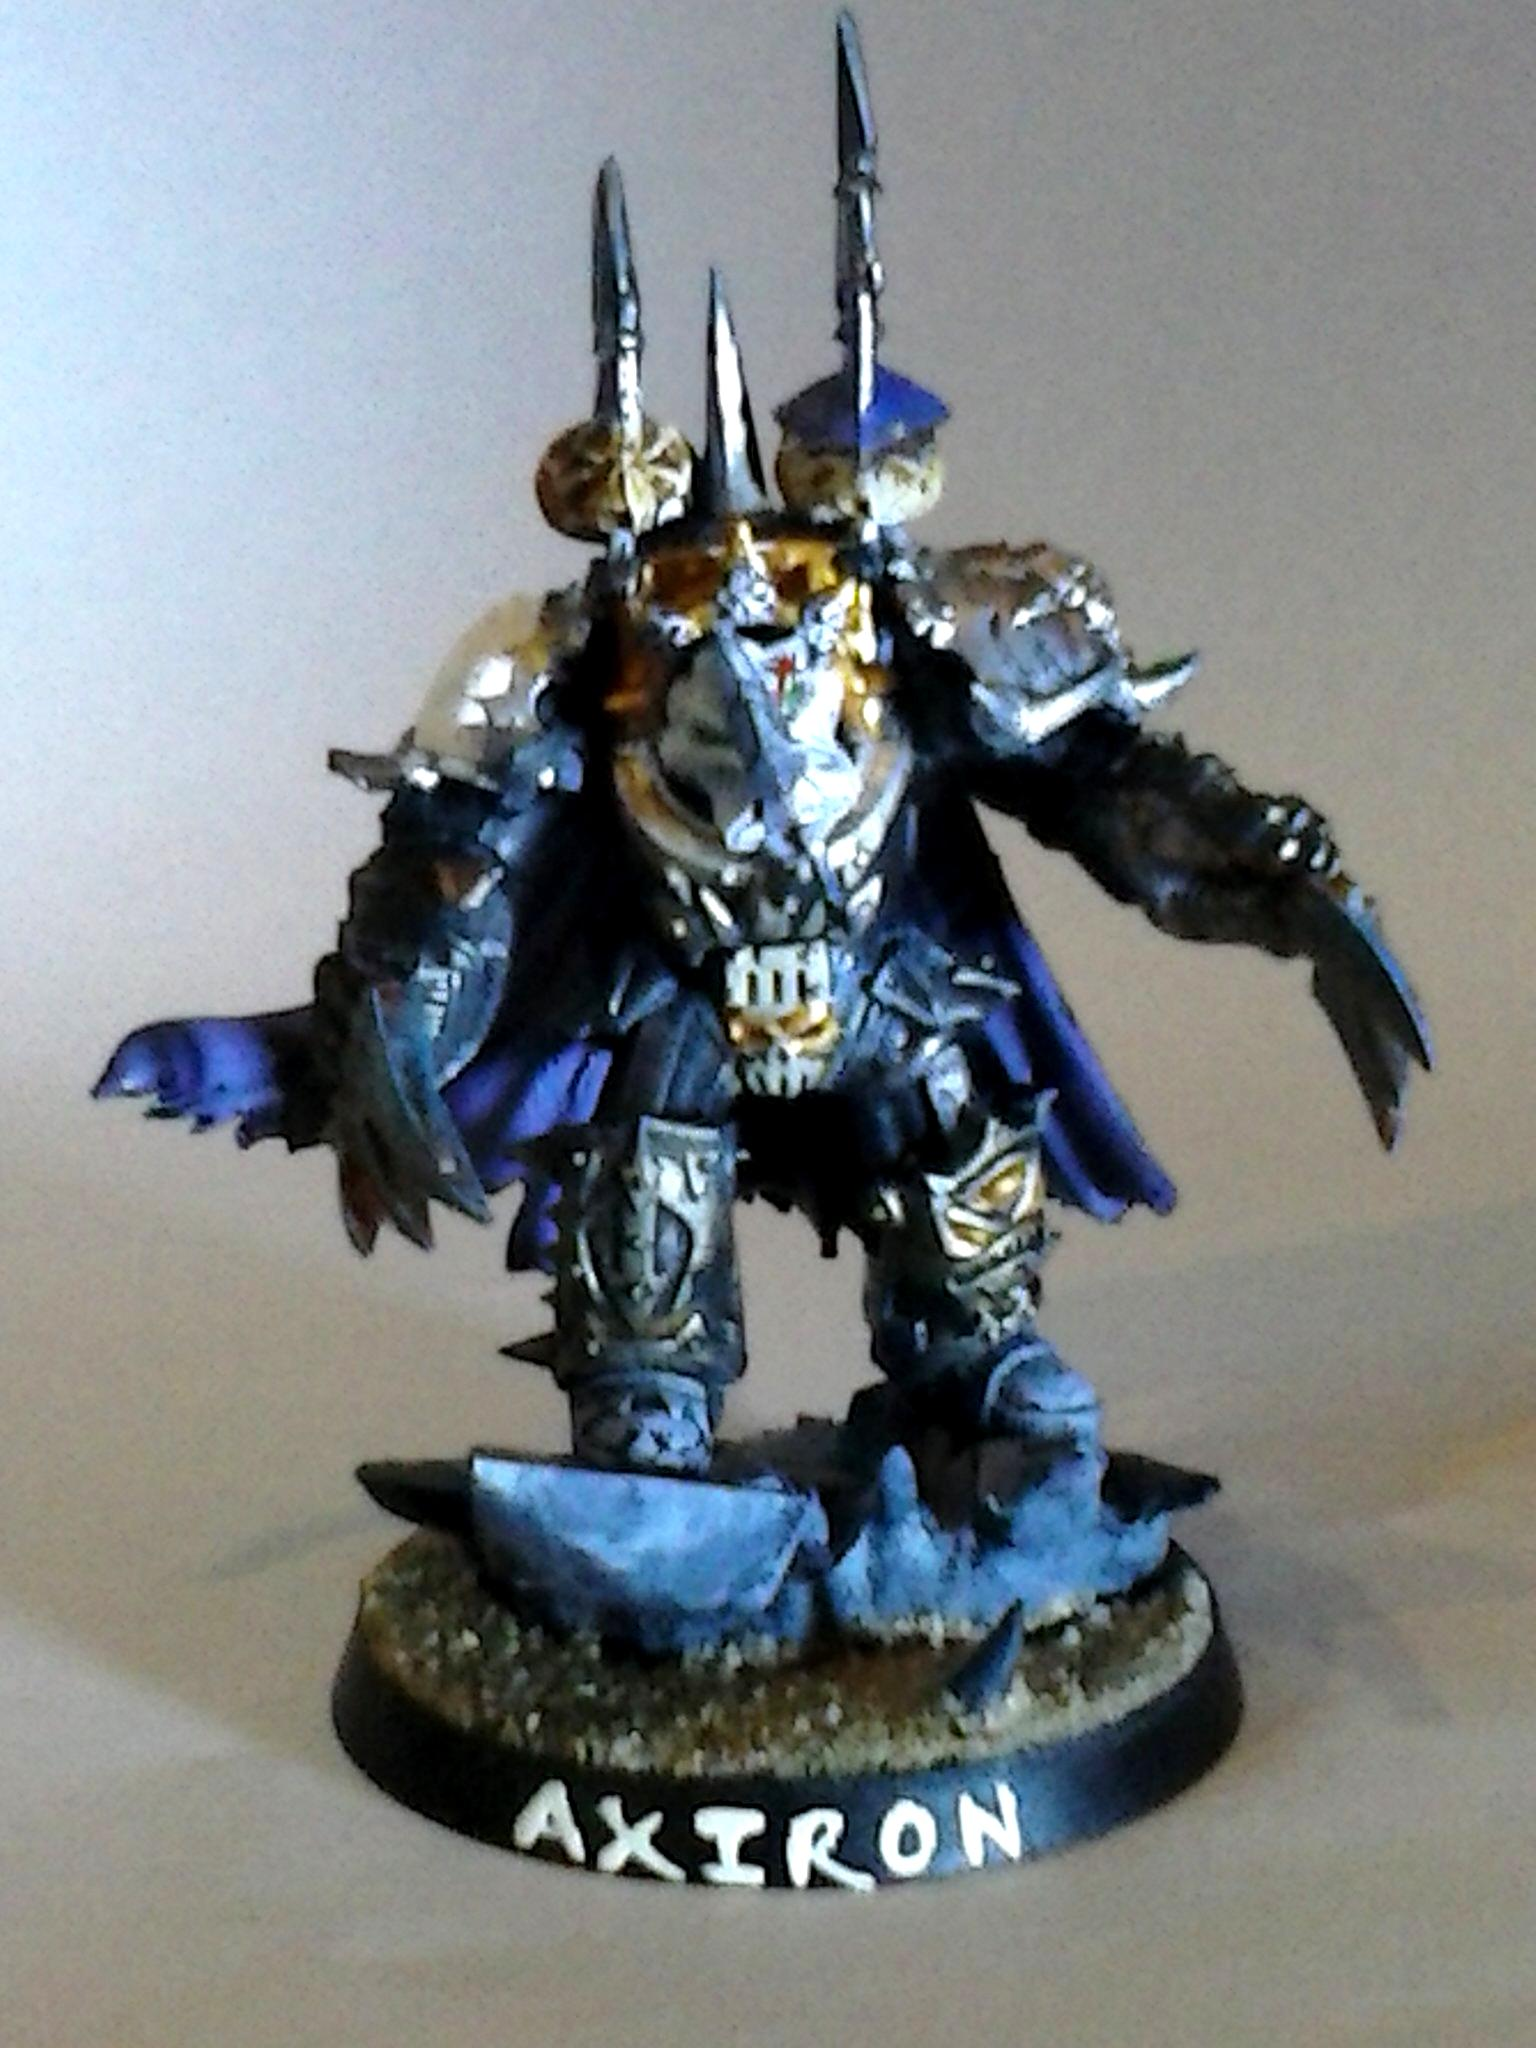 Apostles, Black, Cape, Champion, Chaos, Claw, Claws, Darkness, Hunnter, Khorne, Legion, Lightening, Lightning, Lord, Marbled, Pirate, Pirate Legion, Pirates, Silver, Space, Space Marines, Terminator Armor, Tyranids, Weathered, White